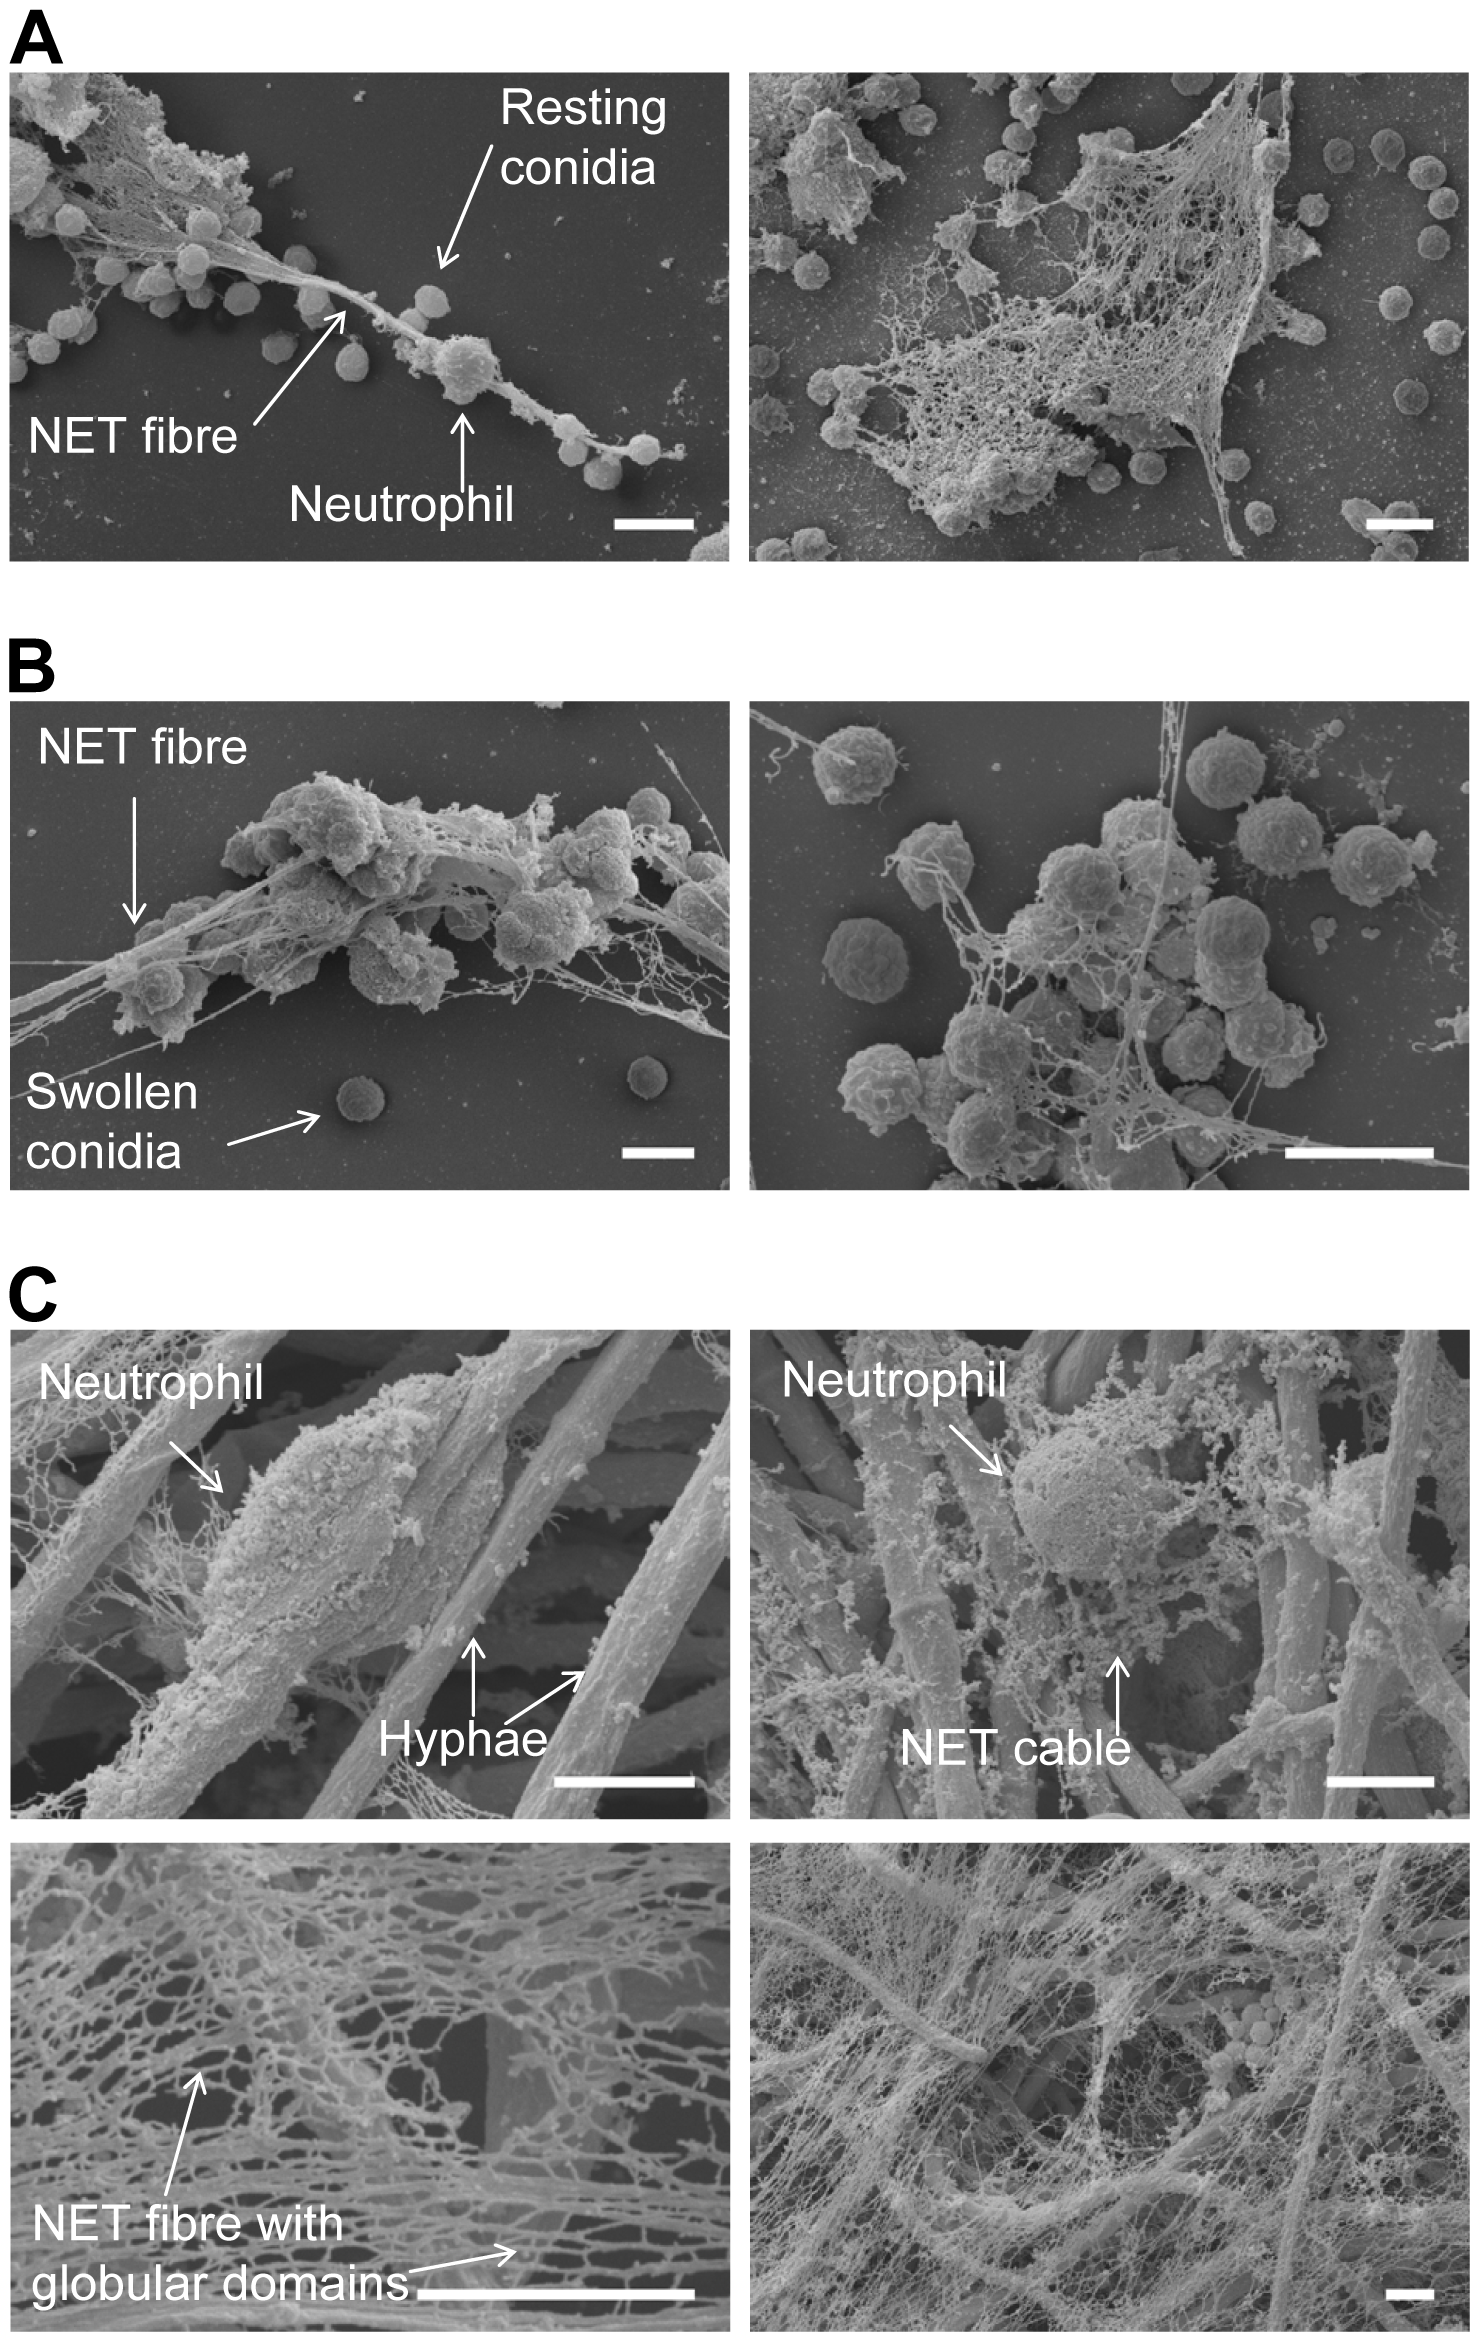 Scanning electron microscopy (SEM) micrographs of conidia and hyphae trapped in NETs.